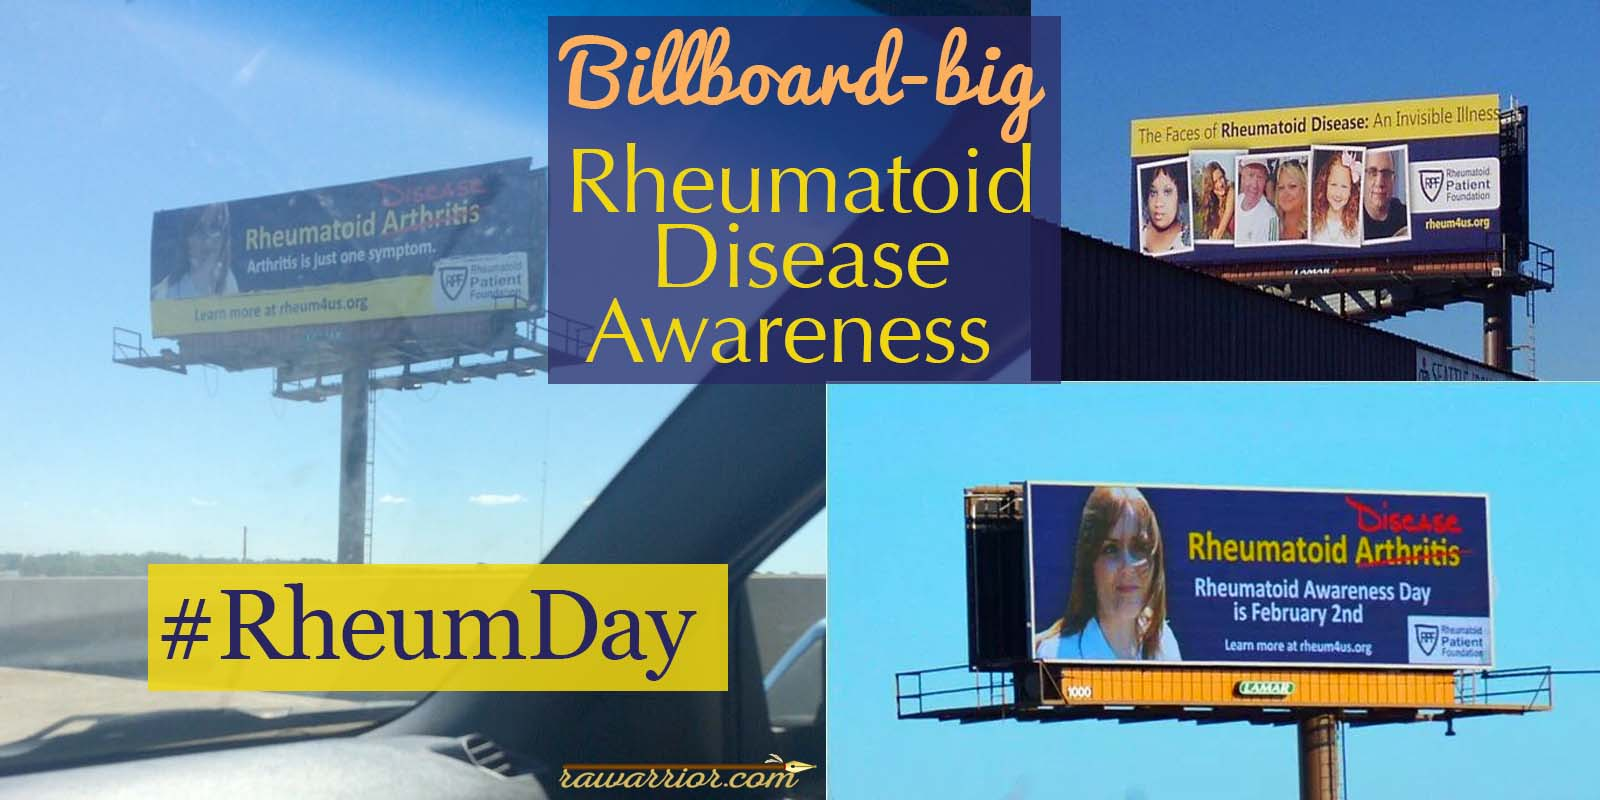 Rheumatoid Disease Awareness Expands